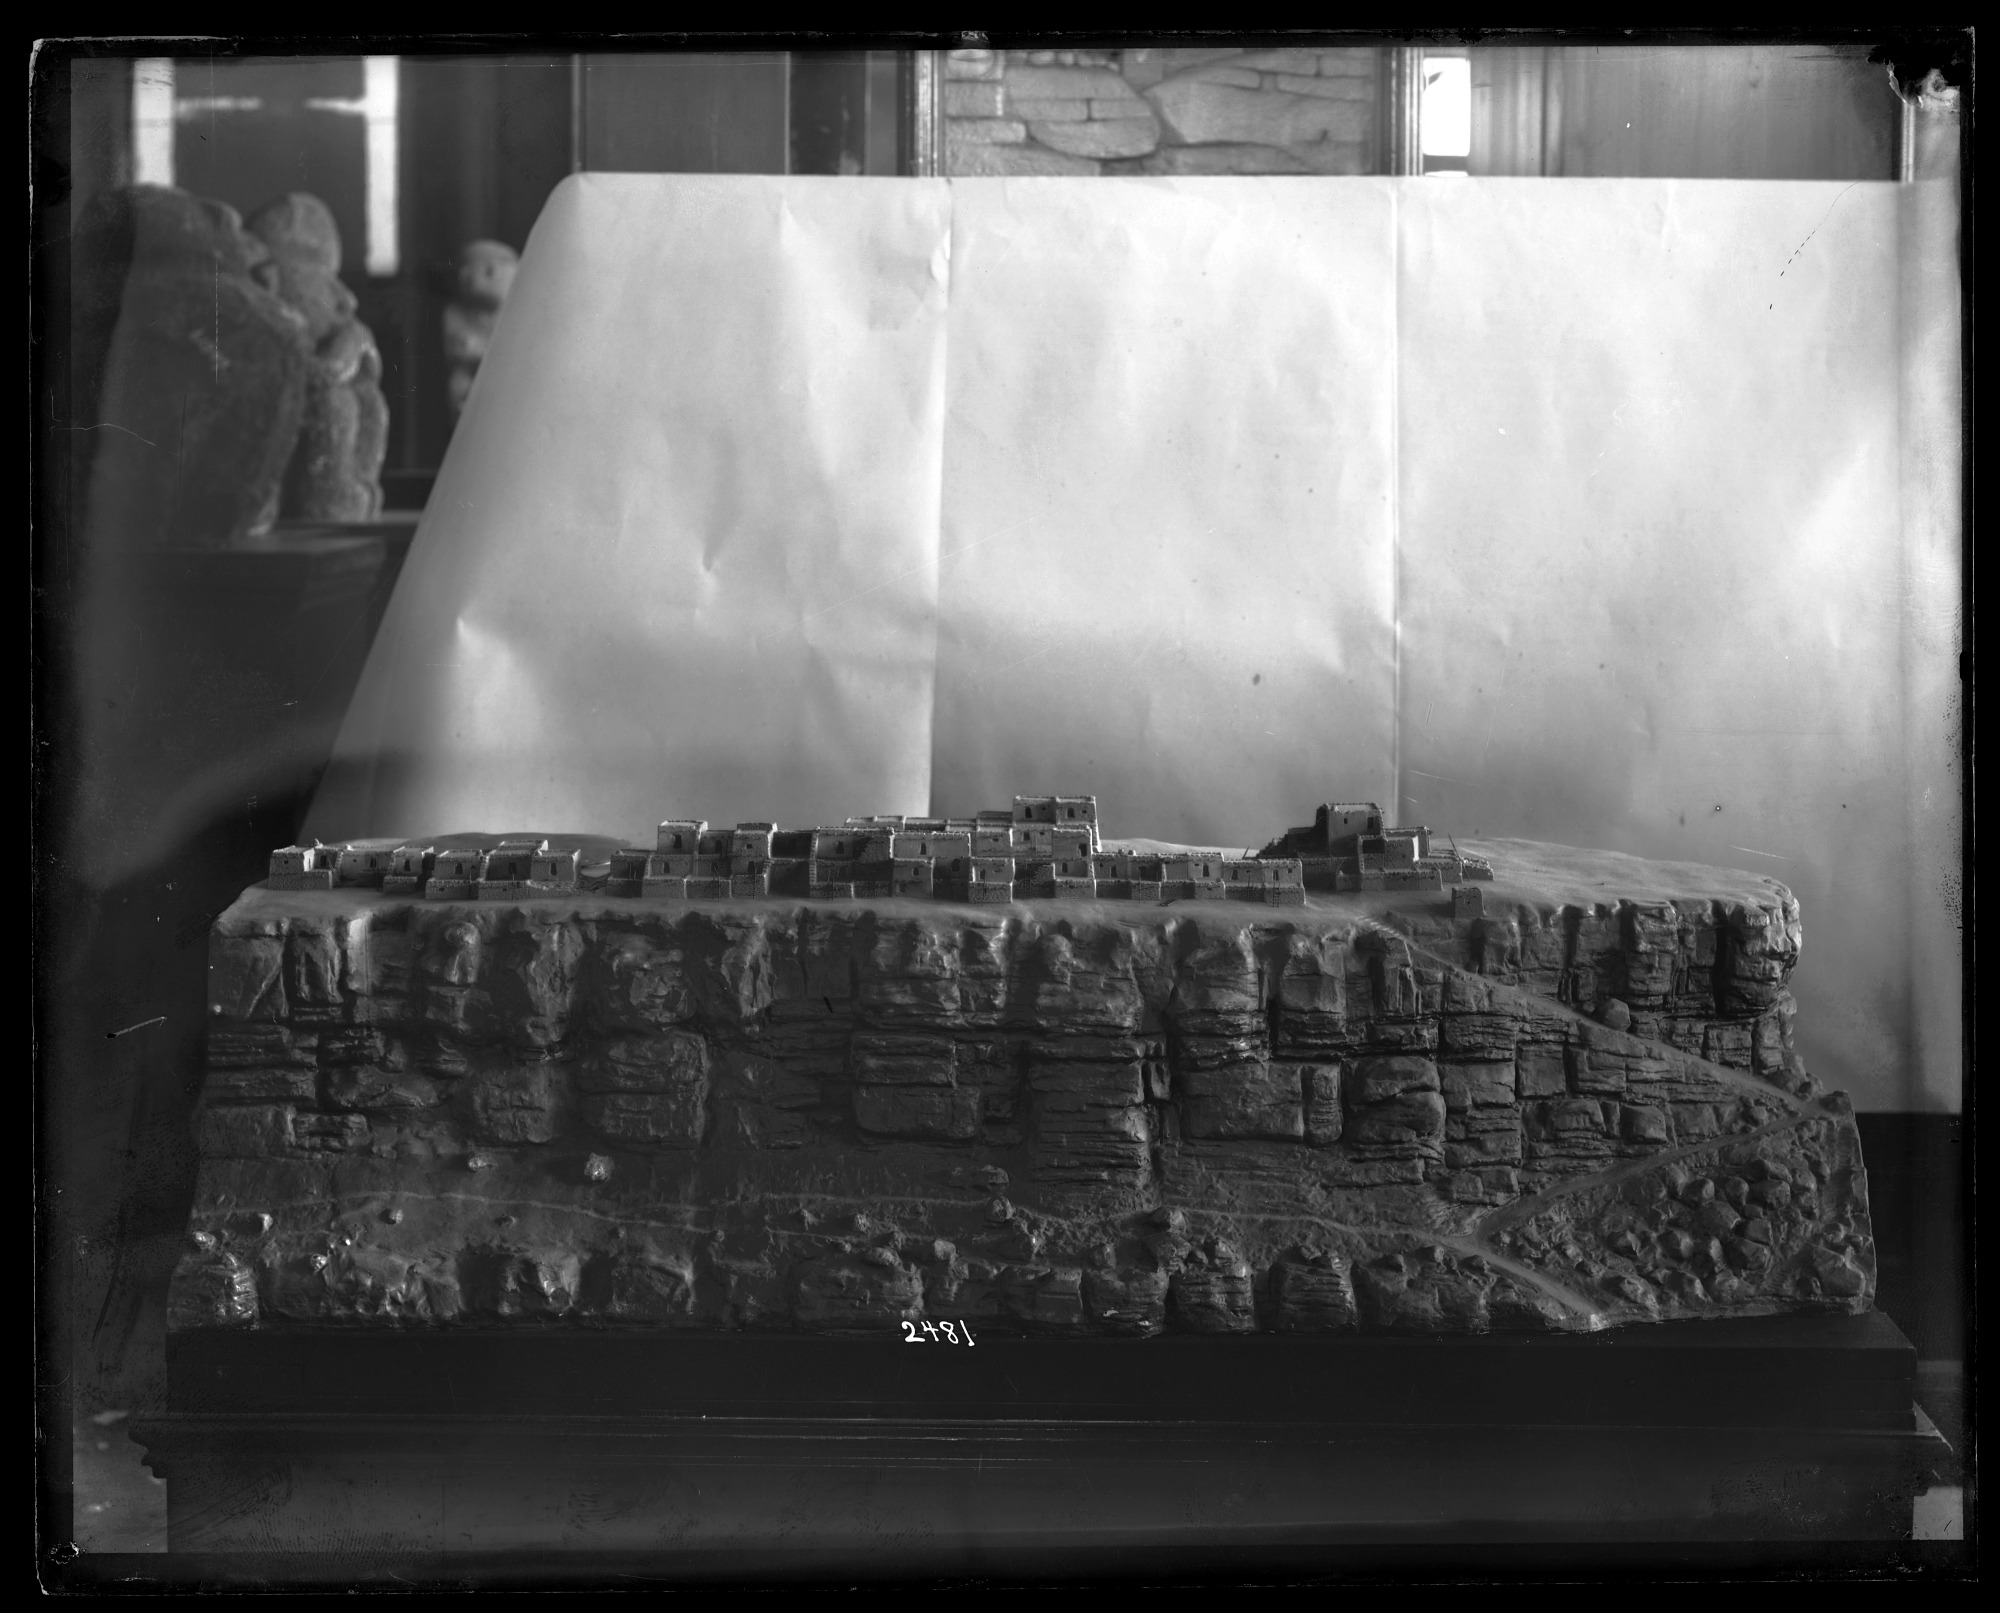 Model of Ancient Ruins in the Southwestern United States